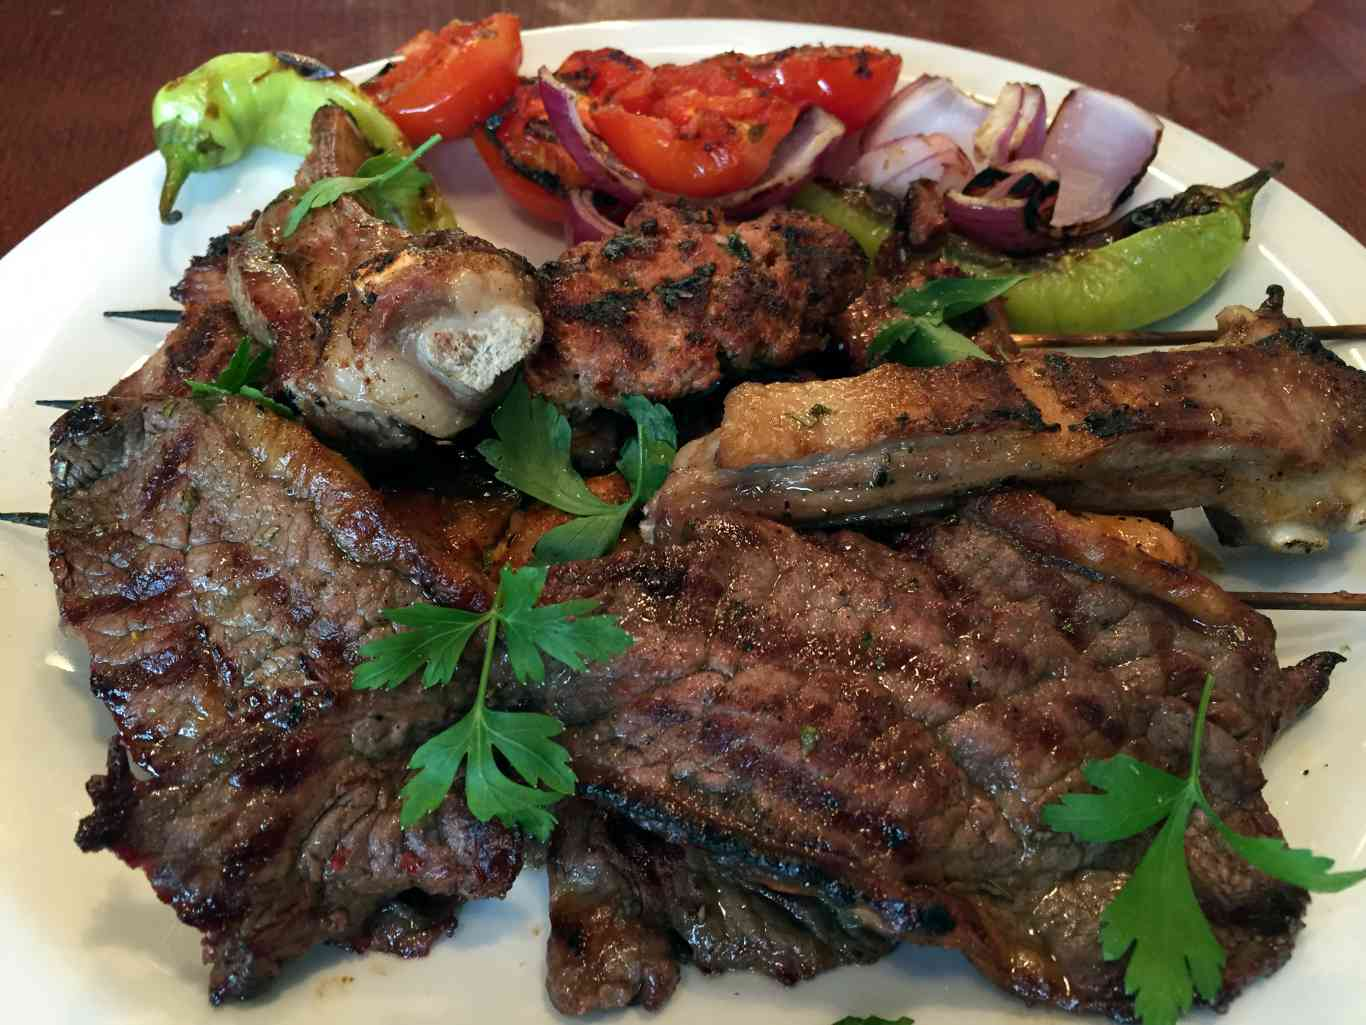 Very meaty: a mixed grill. Photo: SE